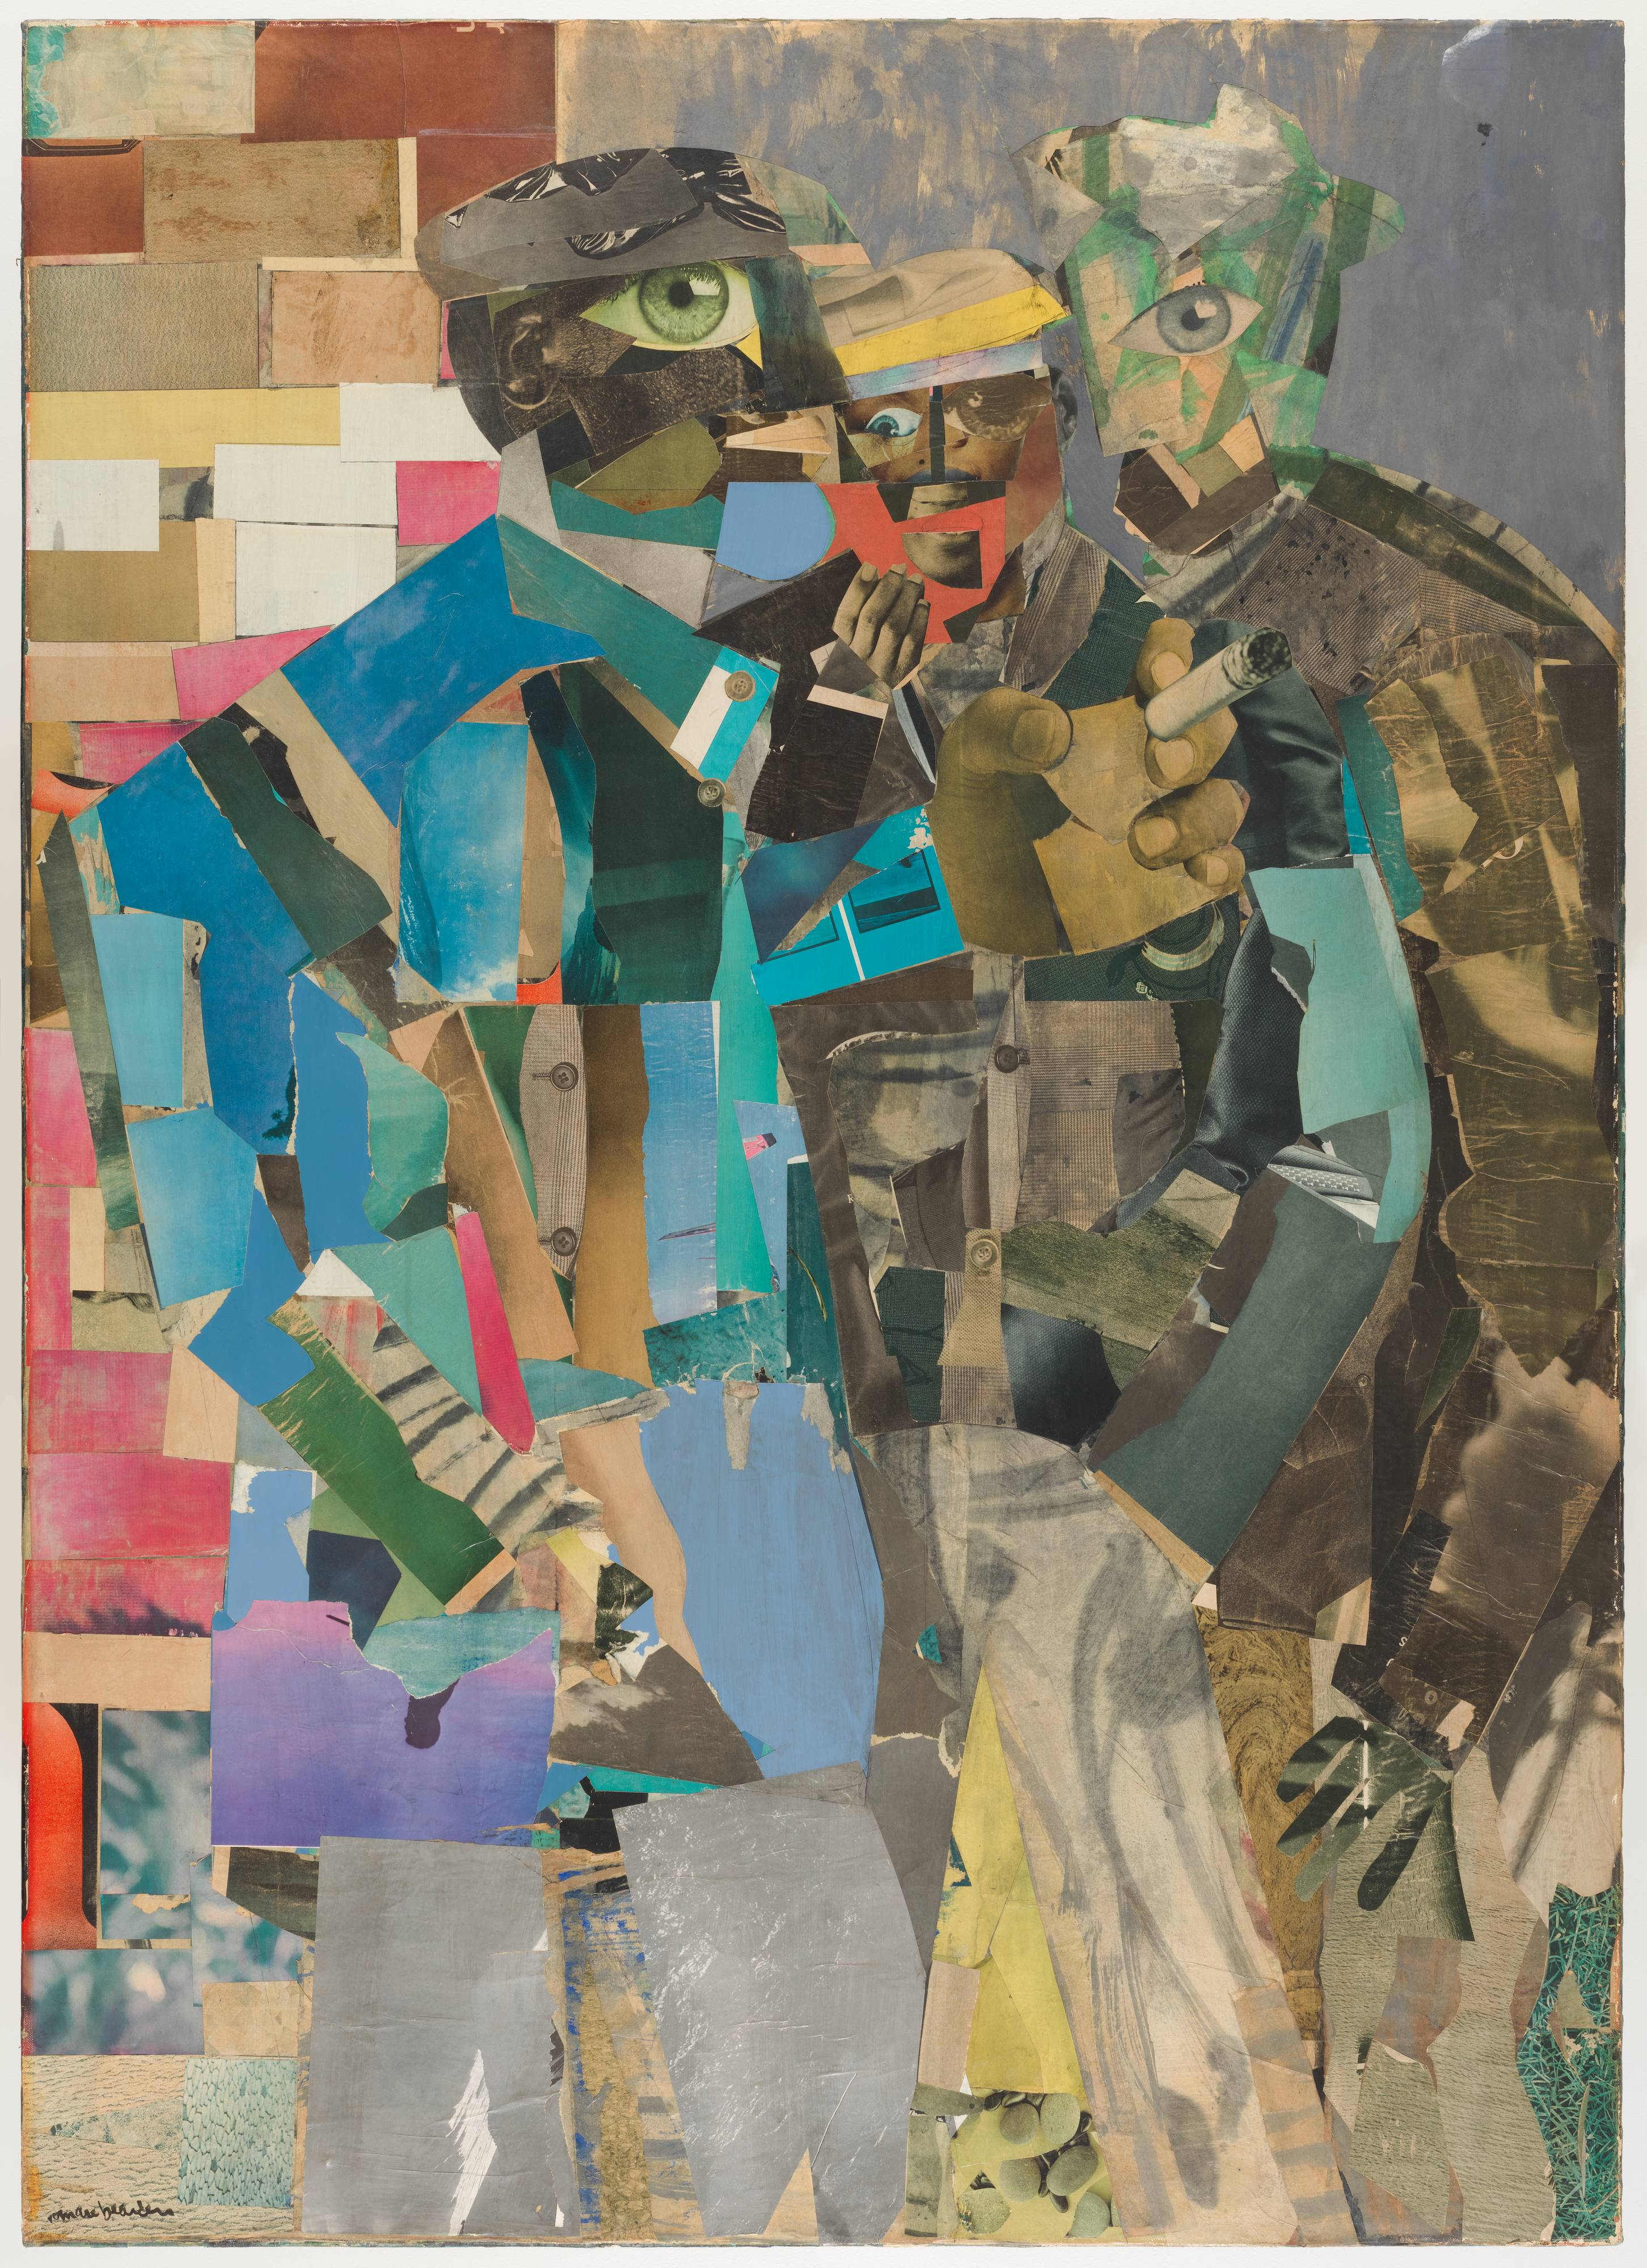 <p>This canvas, which is almost five feet tall and three-and-a-half feet wide, features a collage of painted paper, and details of images clipped from magazines. Three men are depicted from the knees up, standing close together. All three have large, oversized eyes, which have been sourced from magazine photographs. The man on our left is closest to us, and fills almost half of the canvas. He reaches across the others with a large hand, gripping a cigarette between his fingers. The man in the middle is the smallest of the three, and holds a tiny hand to his mouth while keeping the other in his pocket. The man on our right is the most loosely defined, and would be difficult to discern if not for the single, large eye in the middle of his face, and the cutout hand at the end of his long left arm. Most of the color in this collage can be found on the left hand side of the canvas. While the two men on the right wear dull clothing of brown paper scraps, the man on our left wears a blazer of blue and teal painted paper. The background on the right has been rendered with thin, blotchy, blue-gray watercolors, but behind the man on the left is a brick wall made of colorful paper rectangles.</p>